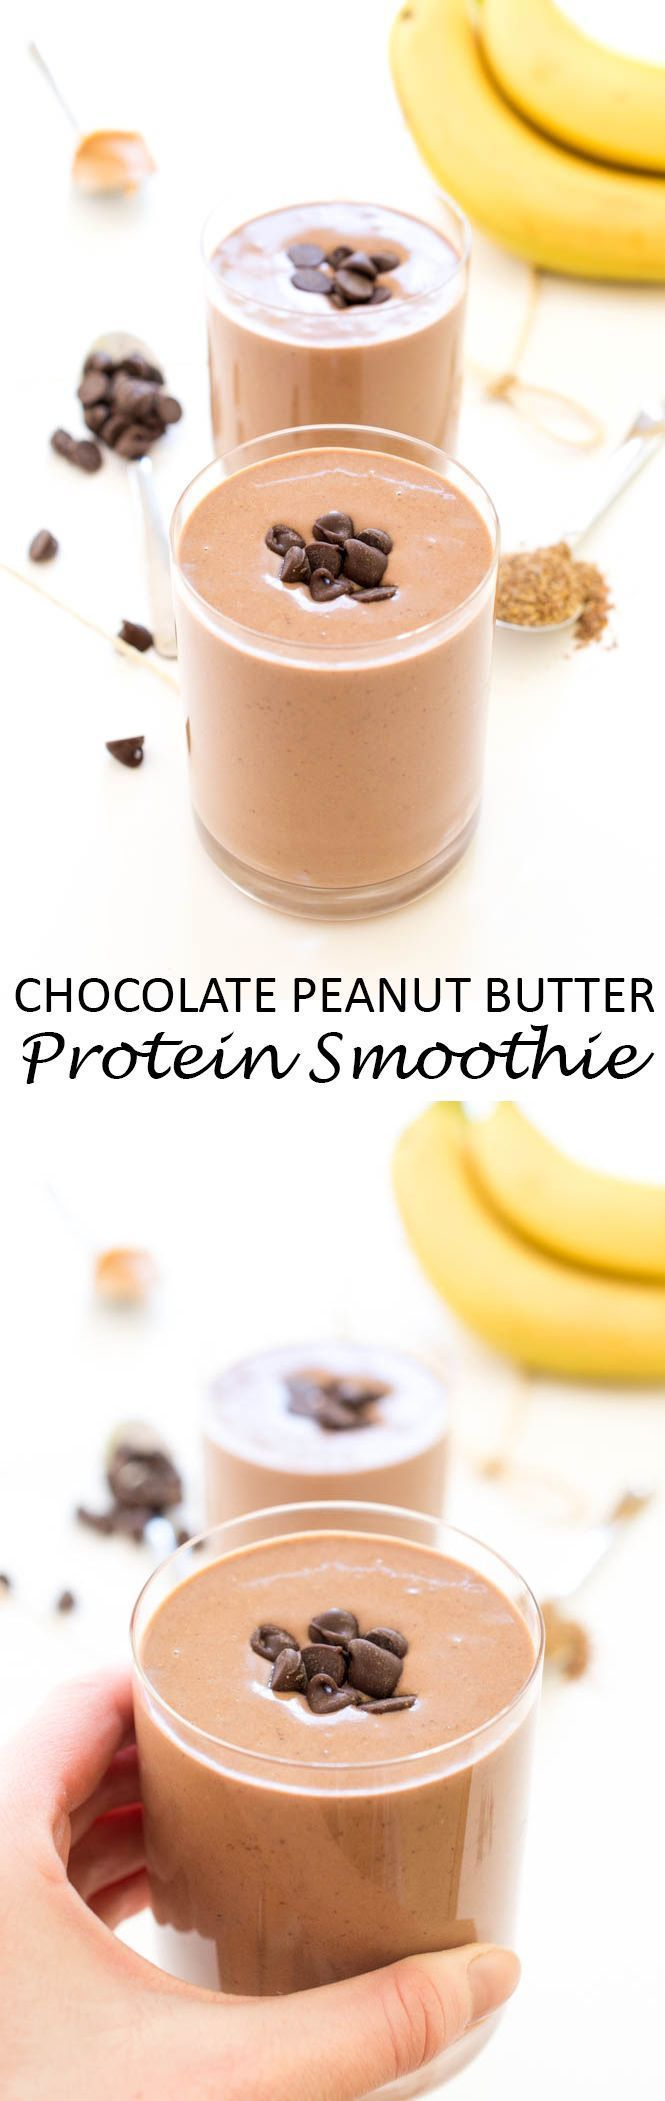 Super Easy 5 Minute Chocolate Peanut Butter Protein Smoothie. A healthy smoothie that tastes like dessert! The perfect way to start your day. | chefsavvy.com #recipe #chocolate #smoothie #protein #breakfast #snack